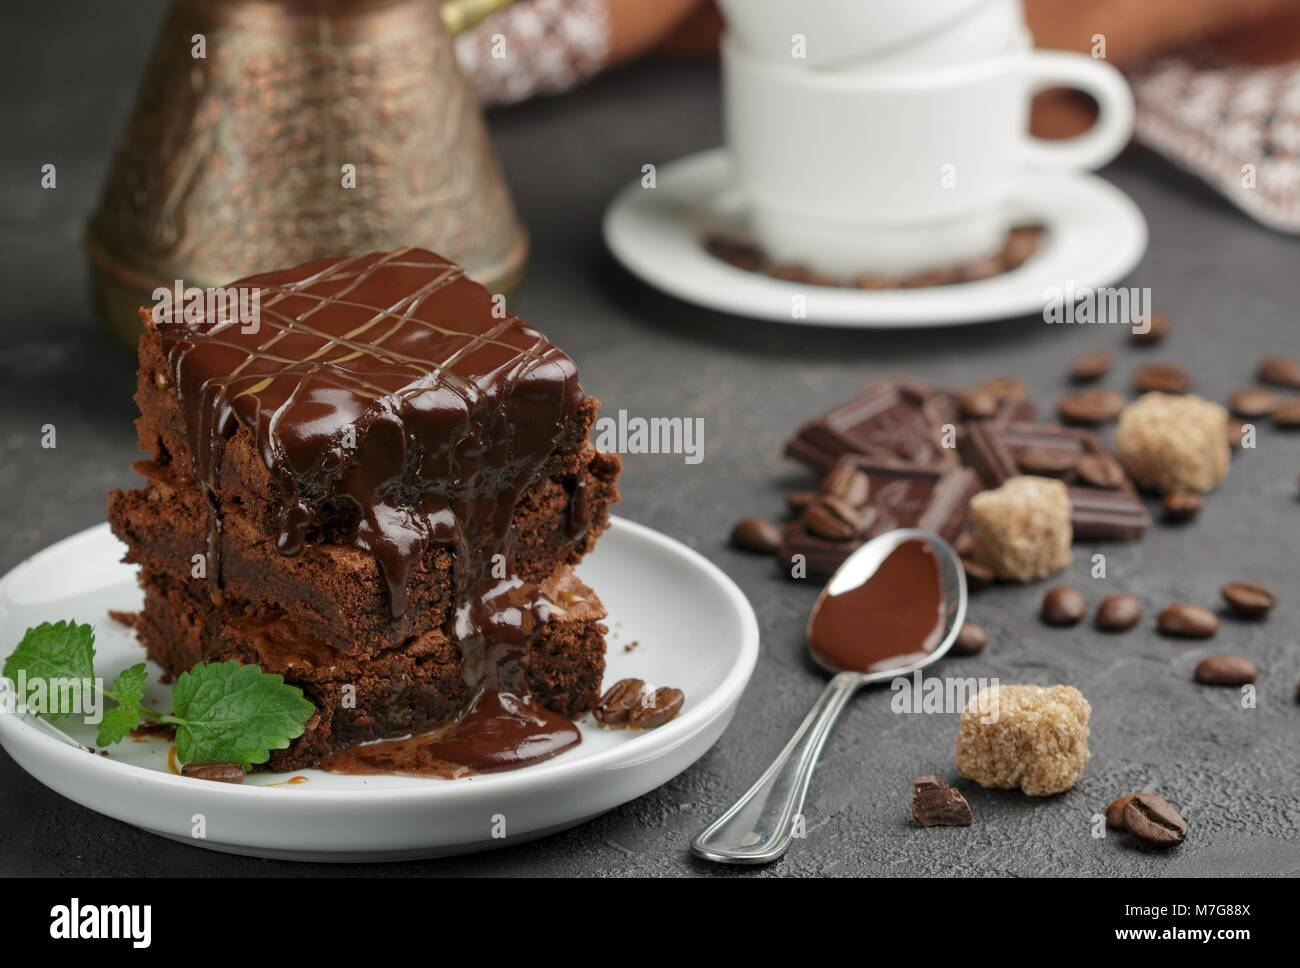 Delicious homemade brownie with chocolate sauce and caramel on the table. Selective focus - Stock Image